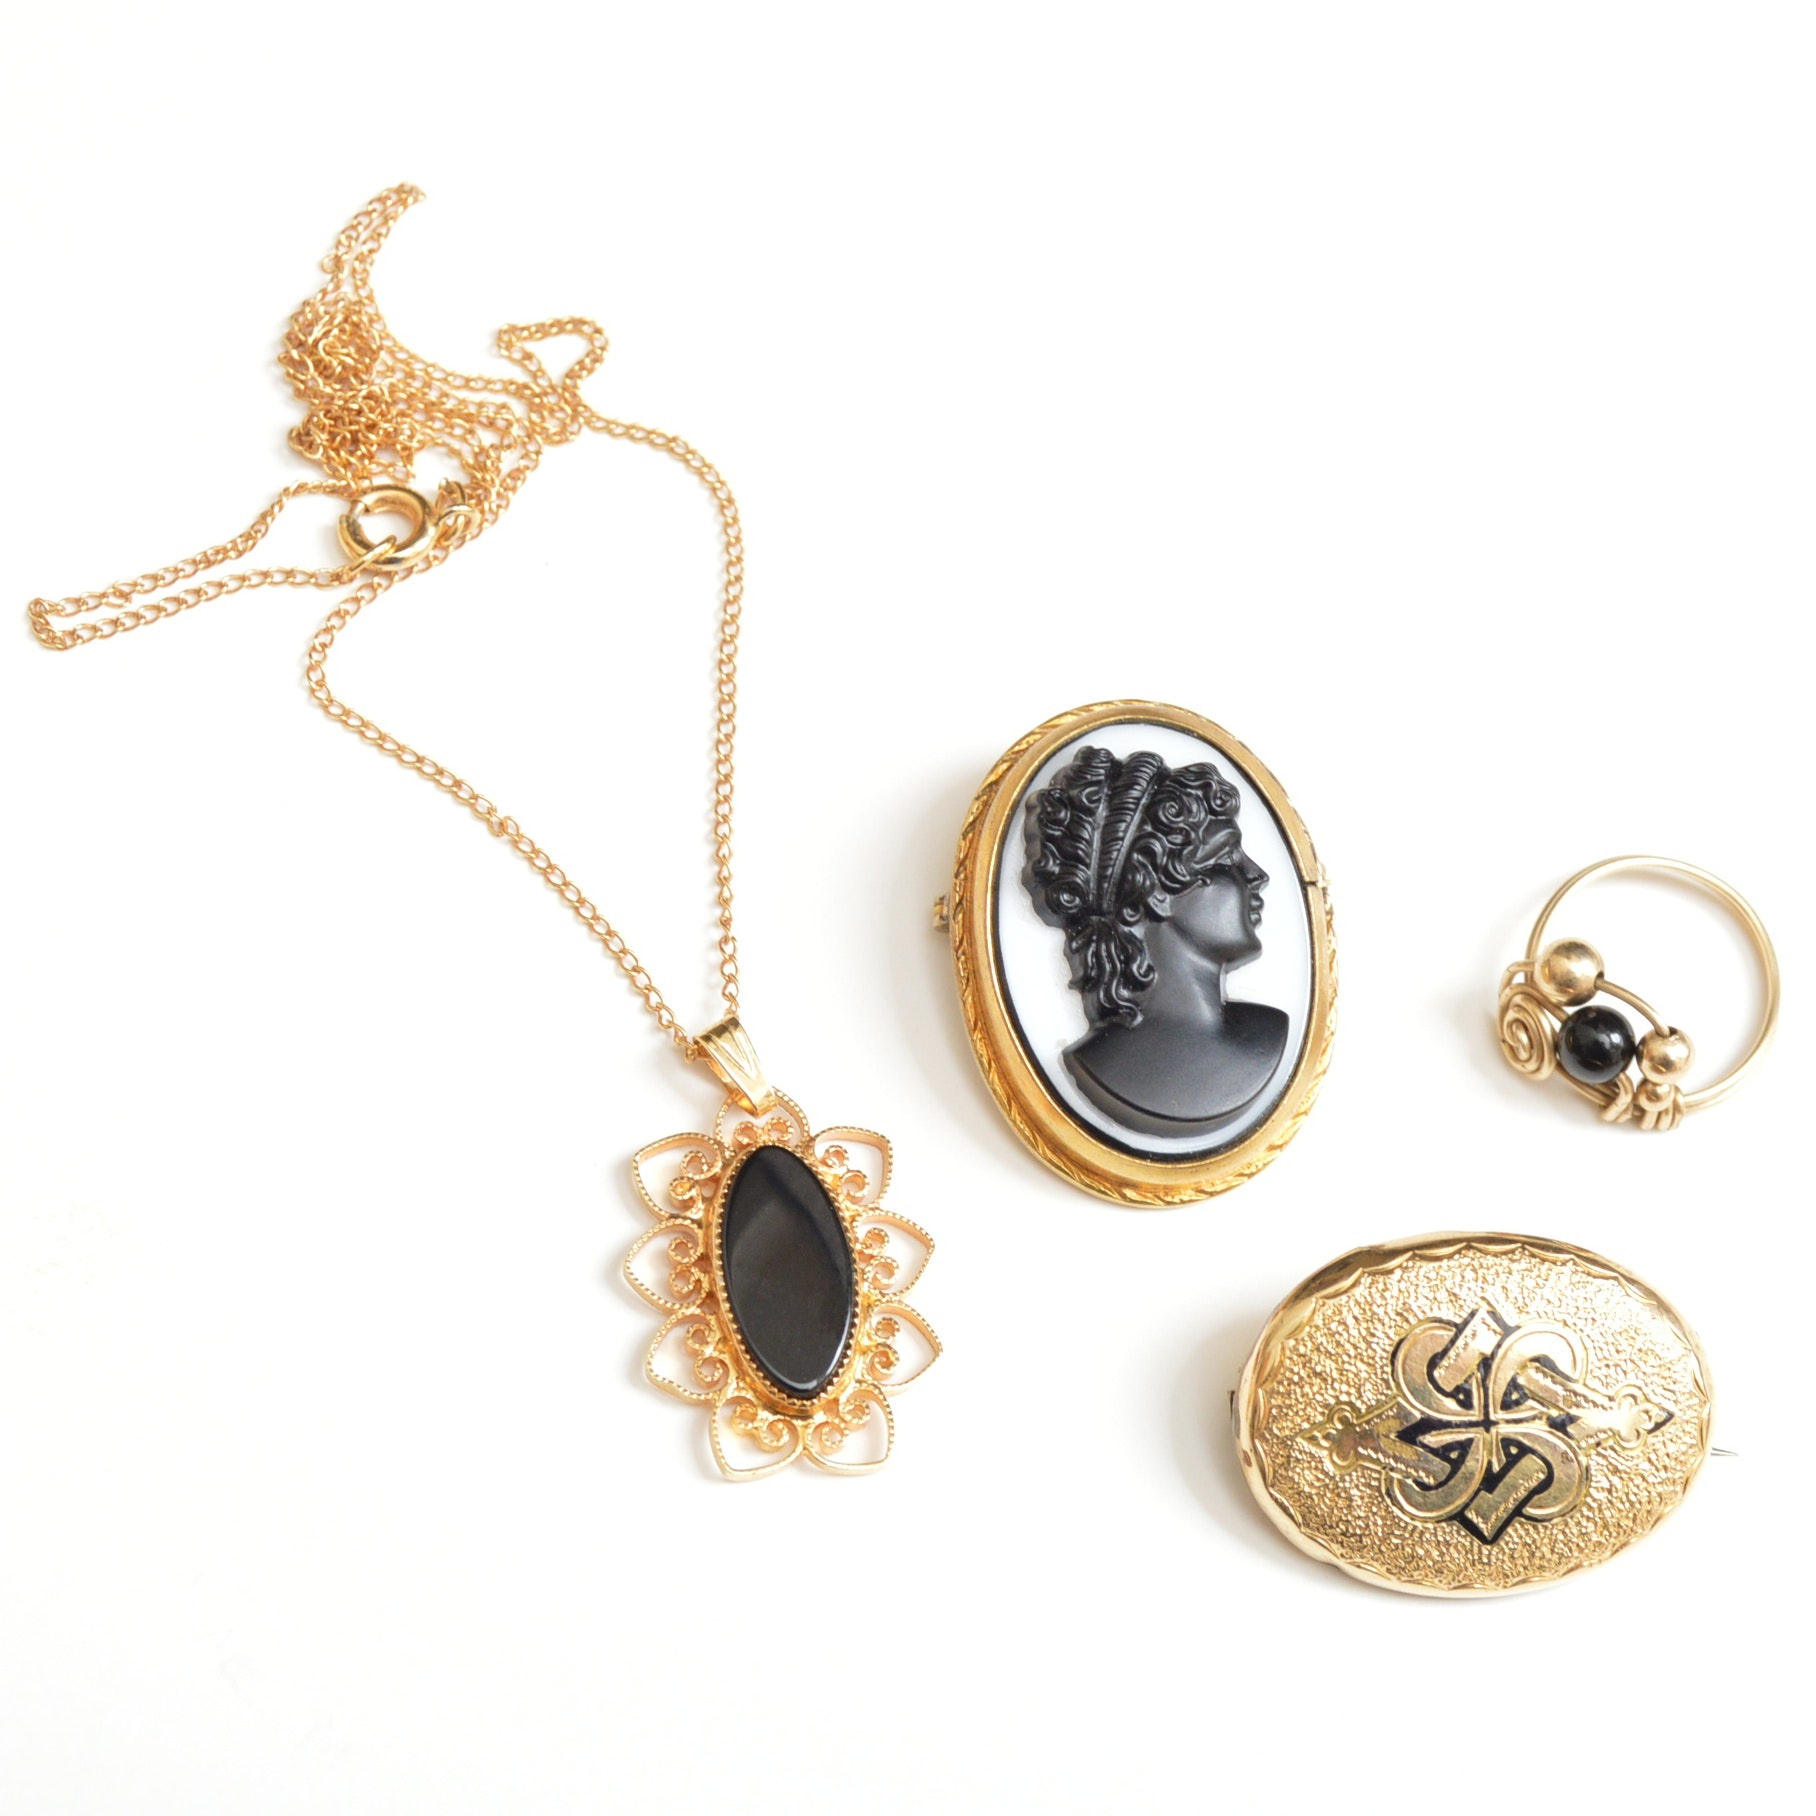 Antique Ring, Necklace and Brooches with Victorian Black Onyx Cameo Brooch